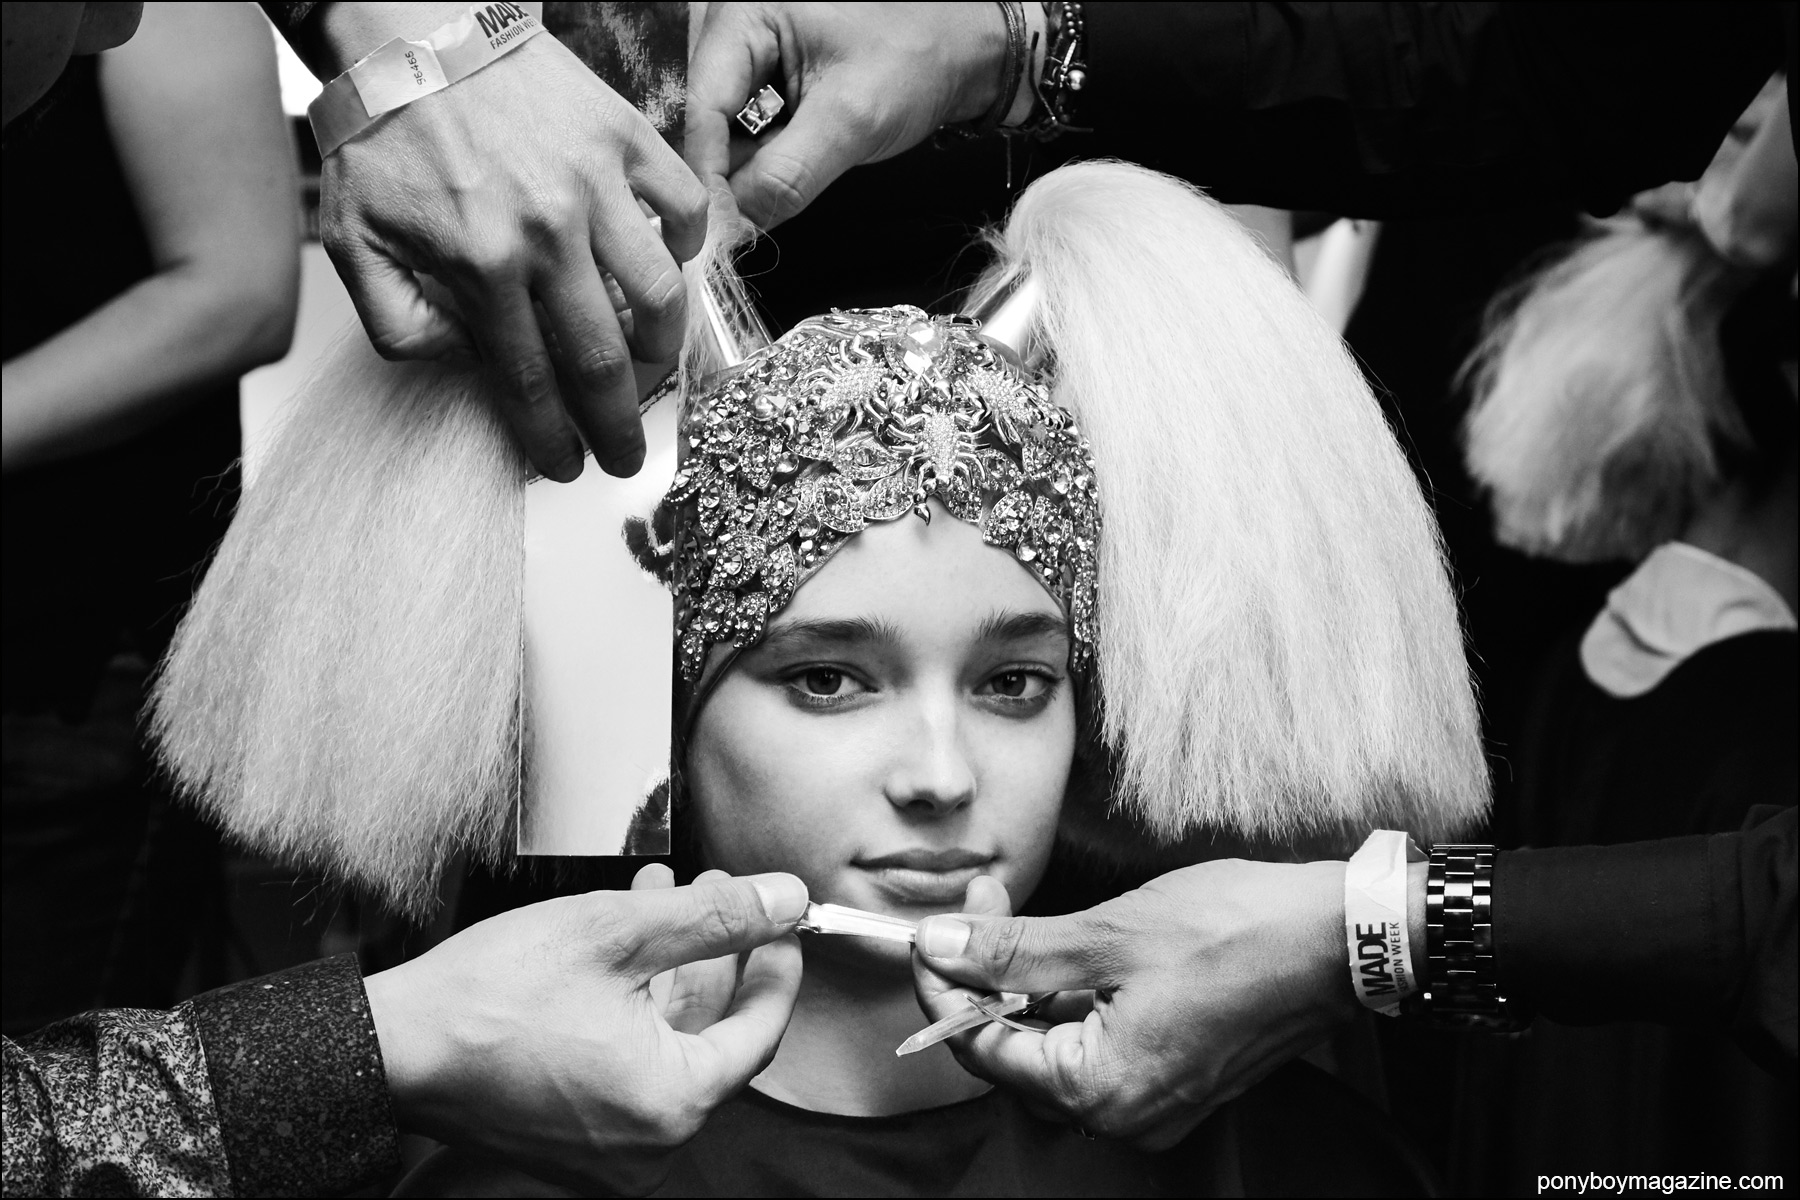 Model Lydia Hunt photographed backstage in hair at the Blonds Spring/Summer 2106 show. Photograph by Alexander Thompson for Ponyboy magazine NY.